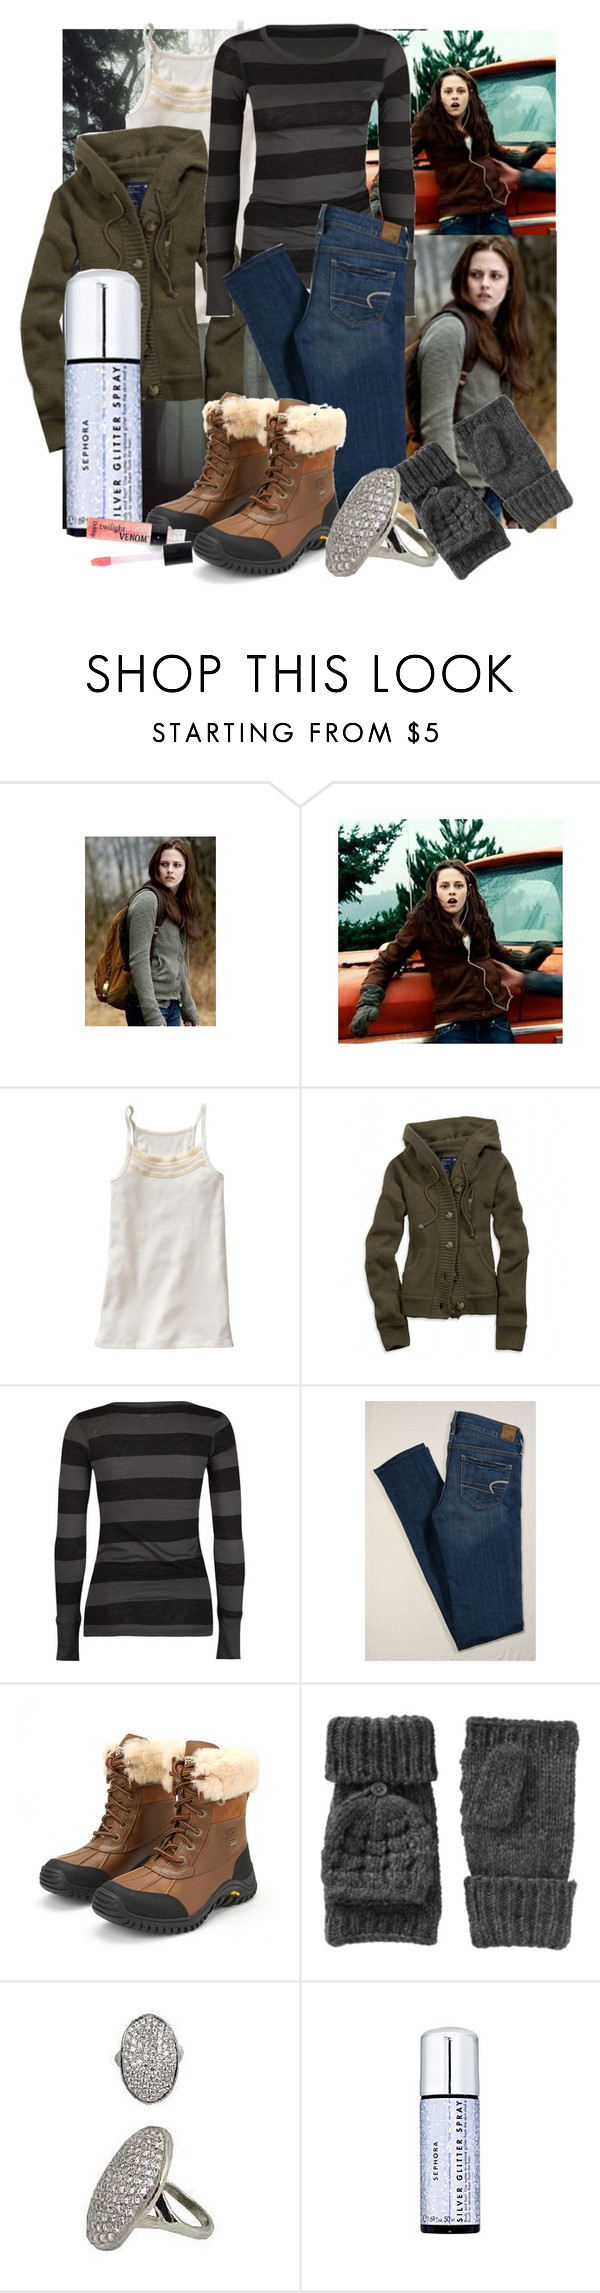 """""""Halloween Countdown: Bella, Twilight"""" by occultette ❤ liked on Polyvore featuring B. Ella, Gap, American Eagle Outfitters, Billabong, UGG Australia, Old Navy, Sephora Collection, DuWop, swan and twilight"""